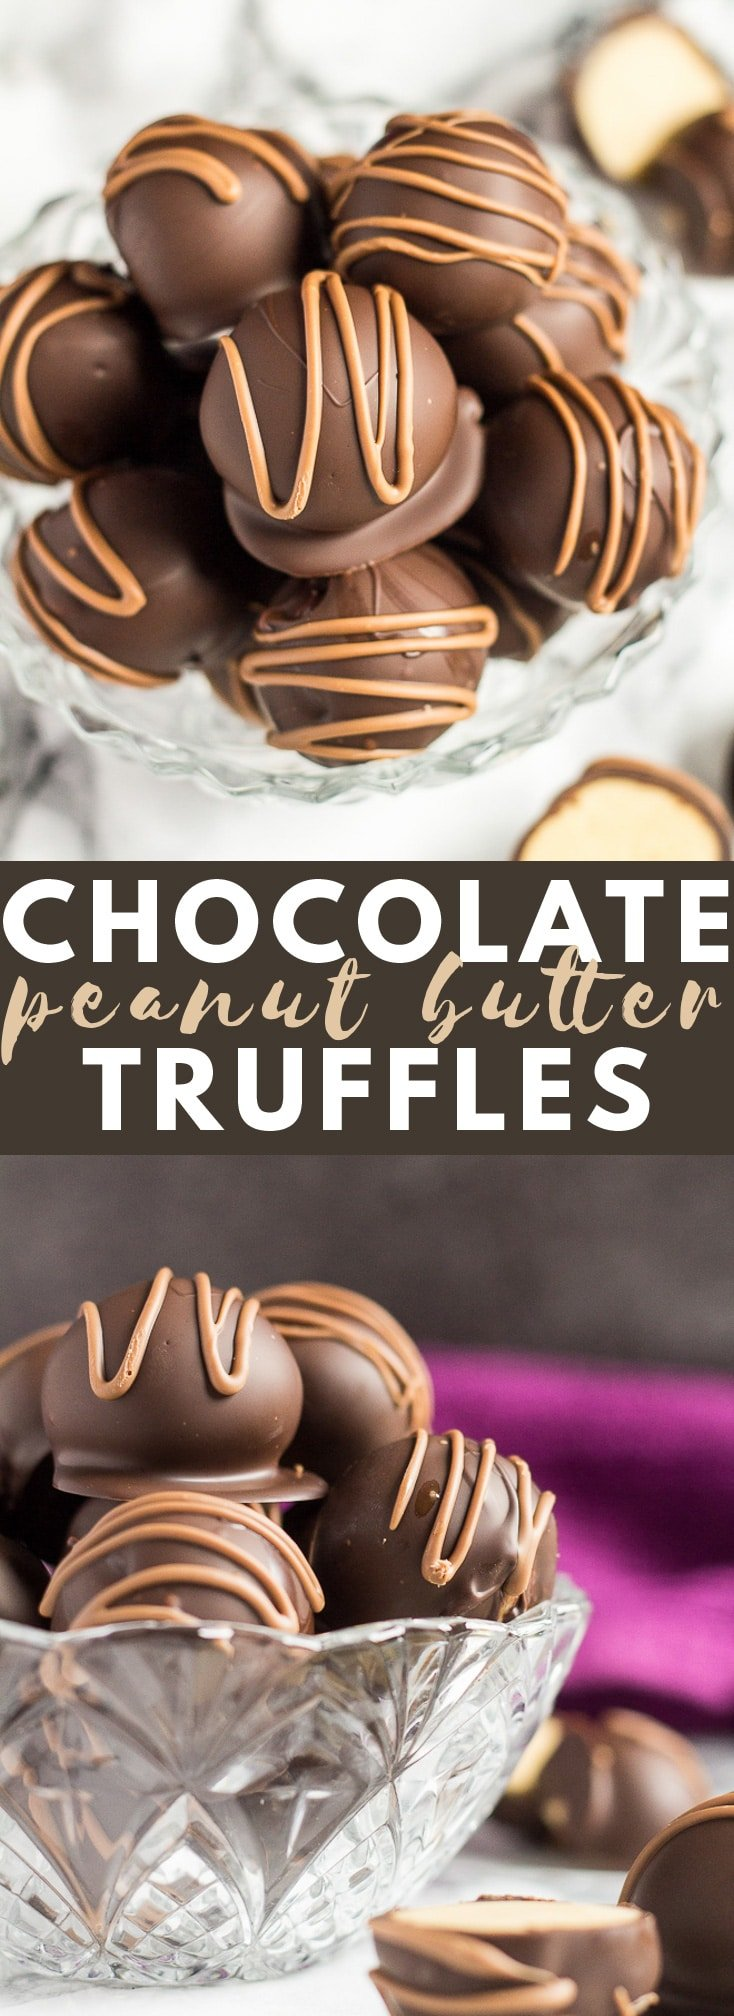 No-Bake Peanut Butter Truffles - Deliciously creamy bite-sized peanut butter balls, coated with dark chocolate, and drizzled with milk chocolate! #chocolate #peanutbutter #truffles #recipe